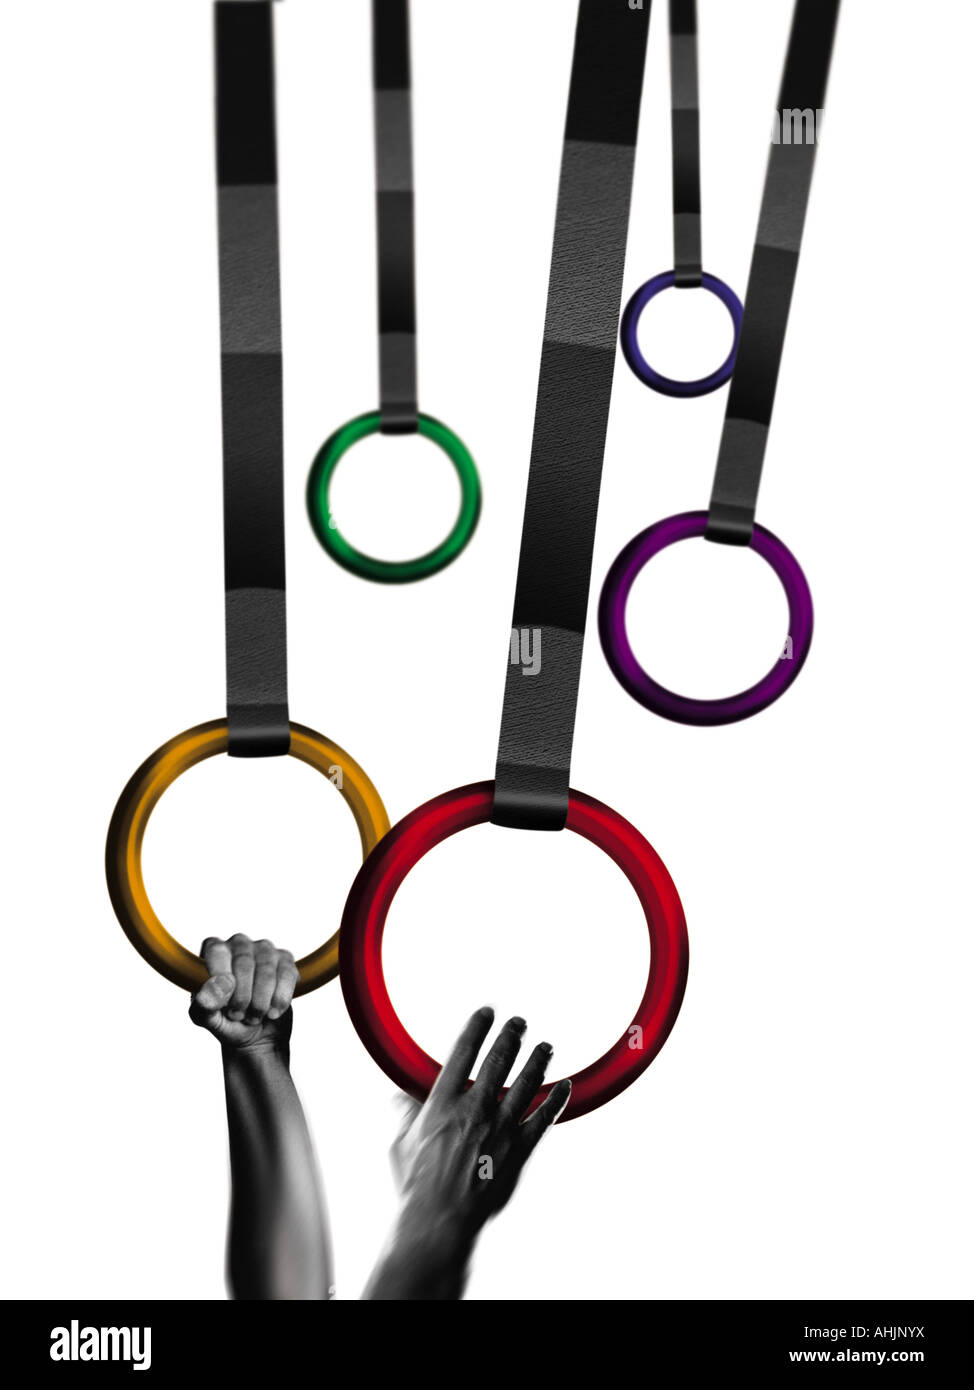 Gymnast rings - Stock Image